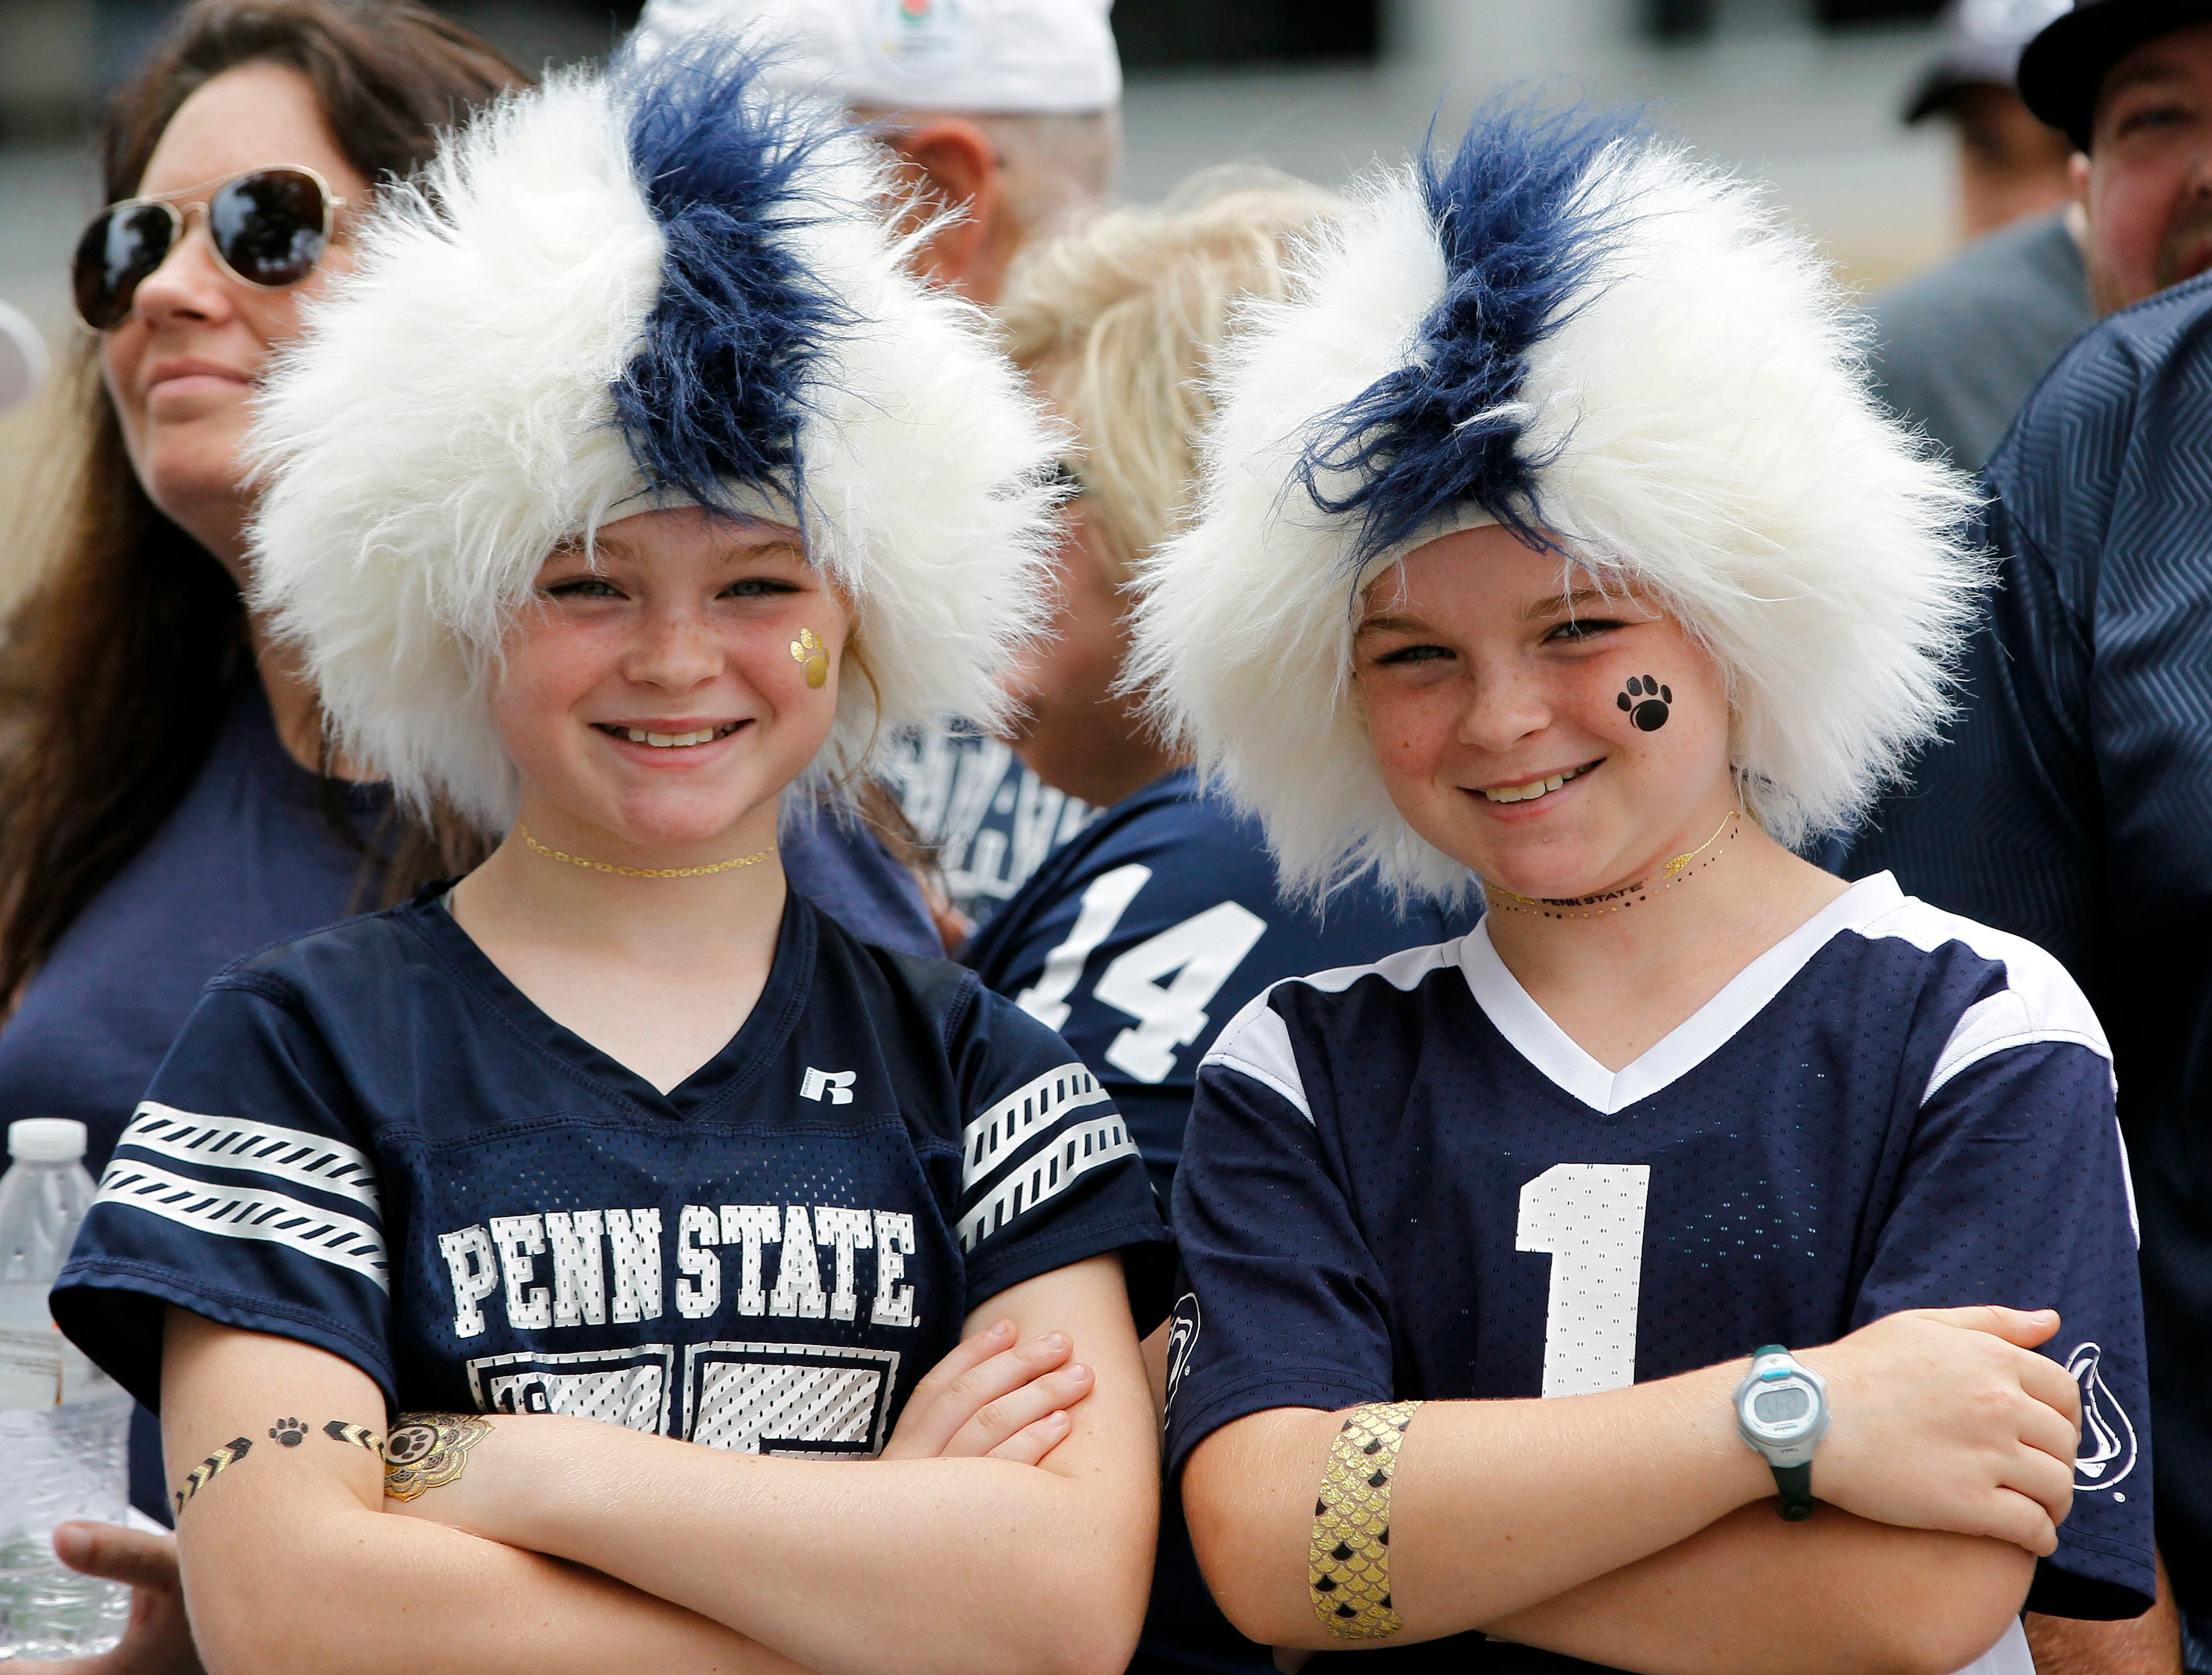 Penn State fans Alexis Stoudt, 11, left, and her twin sister Ainsley Stoudt, 11, both from State College, Pa., wait for the team to arrive at the stadium to take on Appalachian State in an NCAA college football game in State College, Pa., Saturday, Sept. 1, 2018. (AP Photo/Chris Knight)